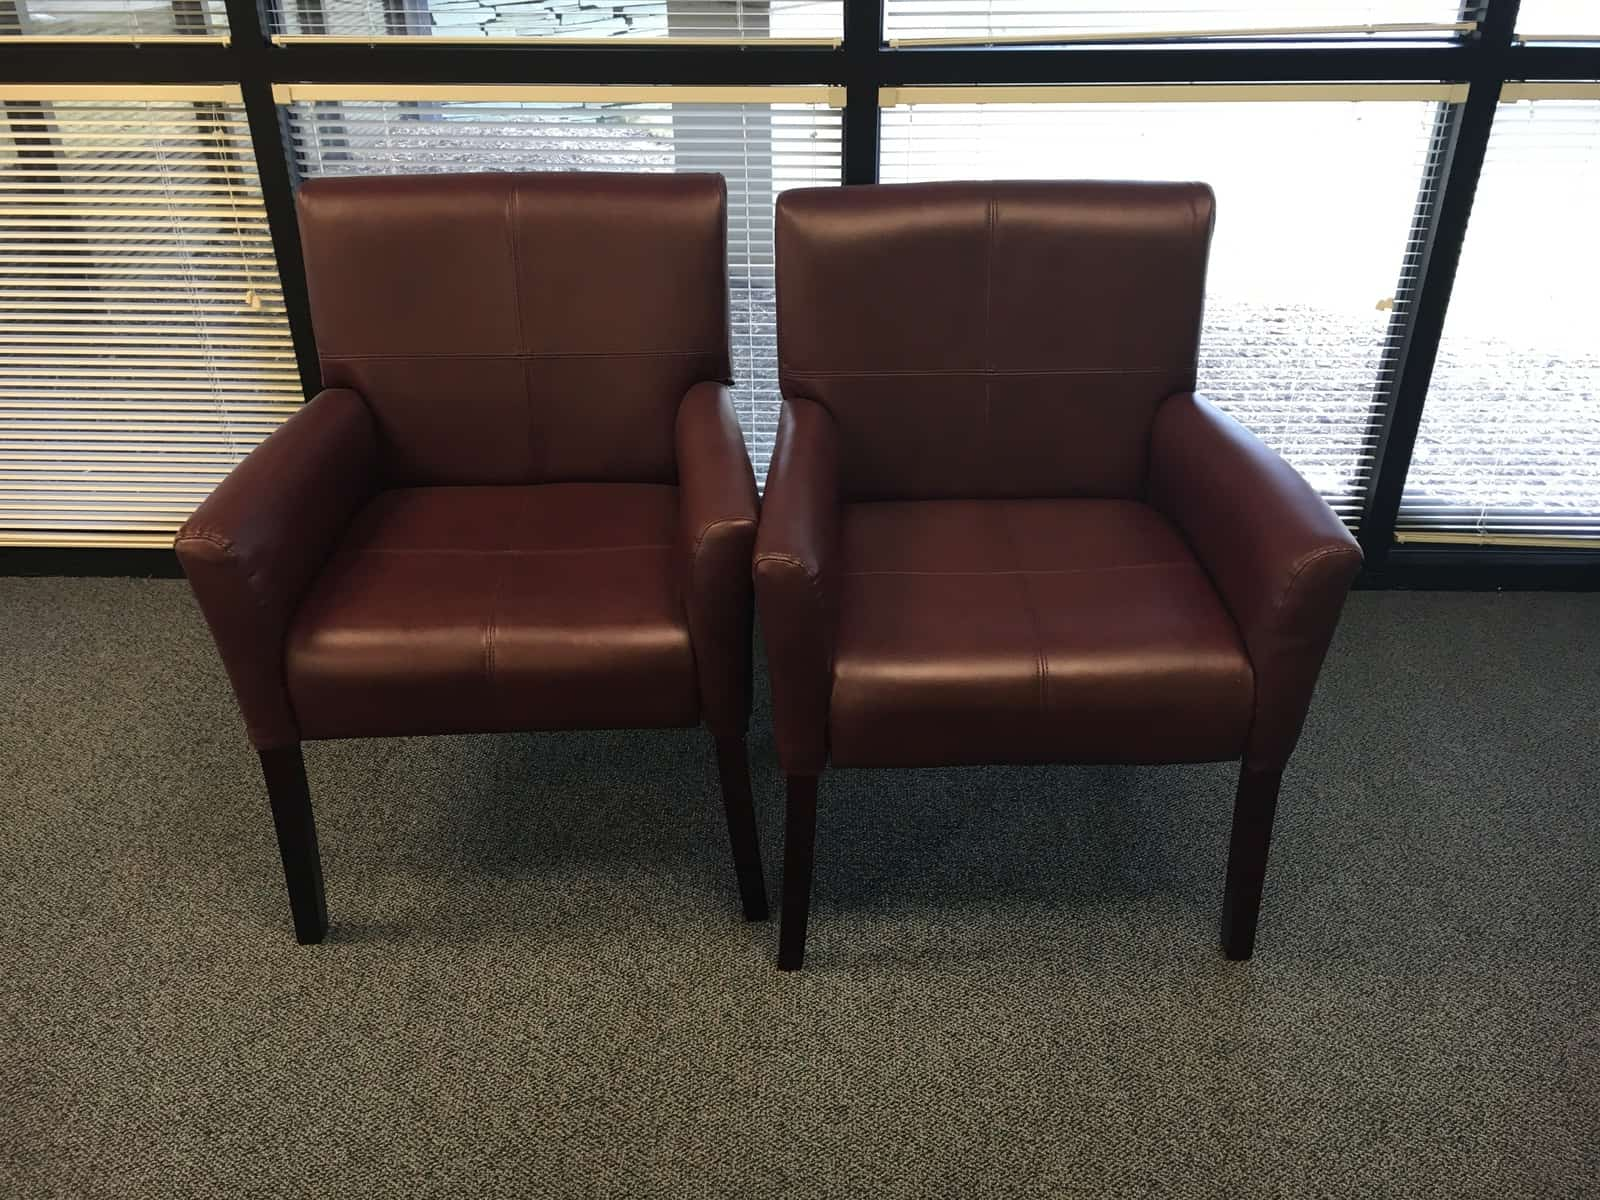 used conference room chairs ergonomic chair buy and break furniture tables